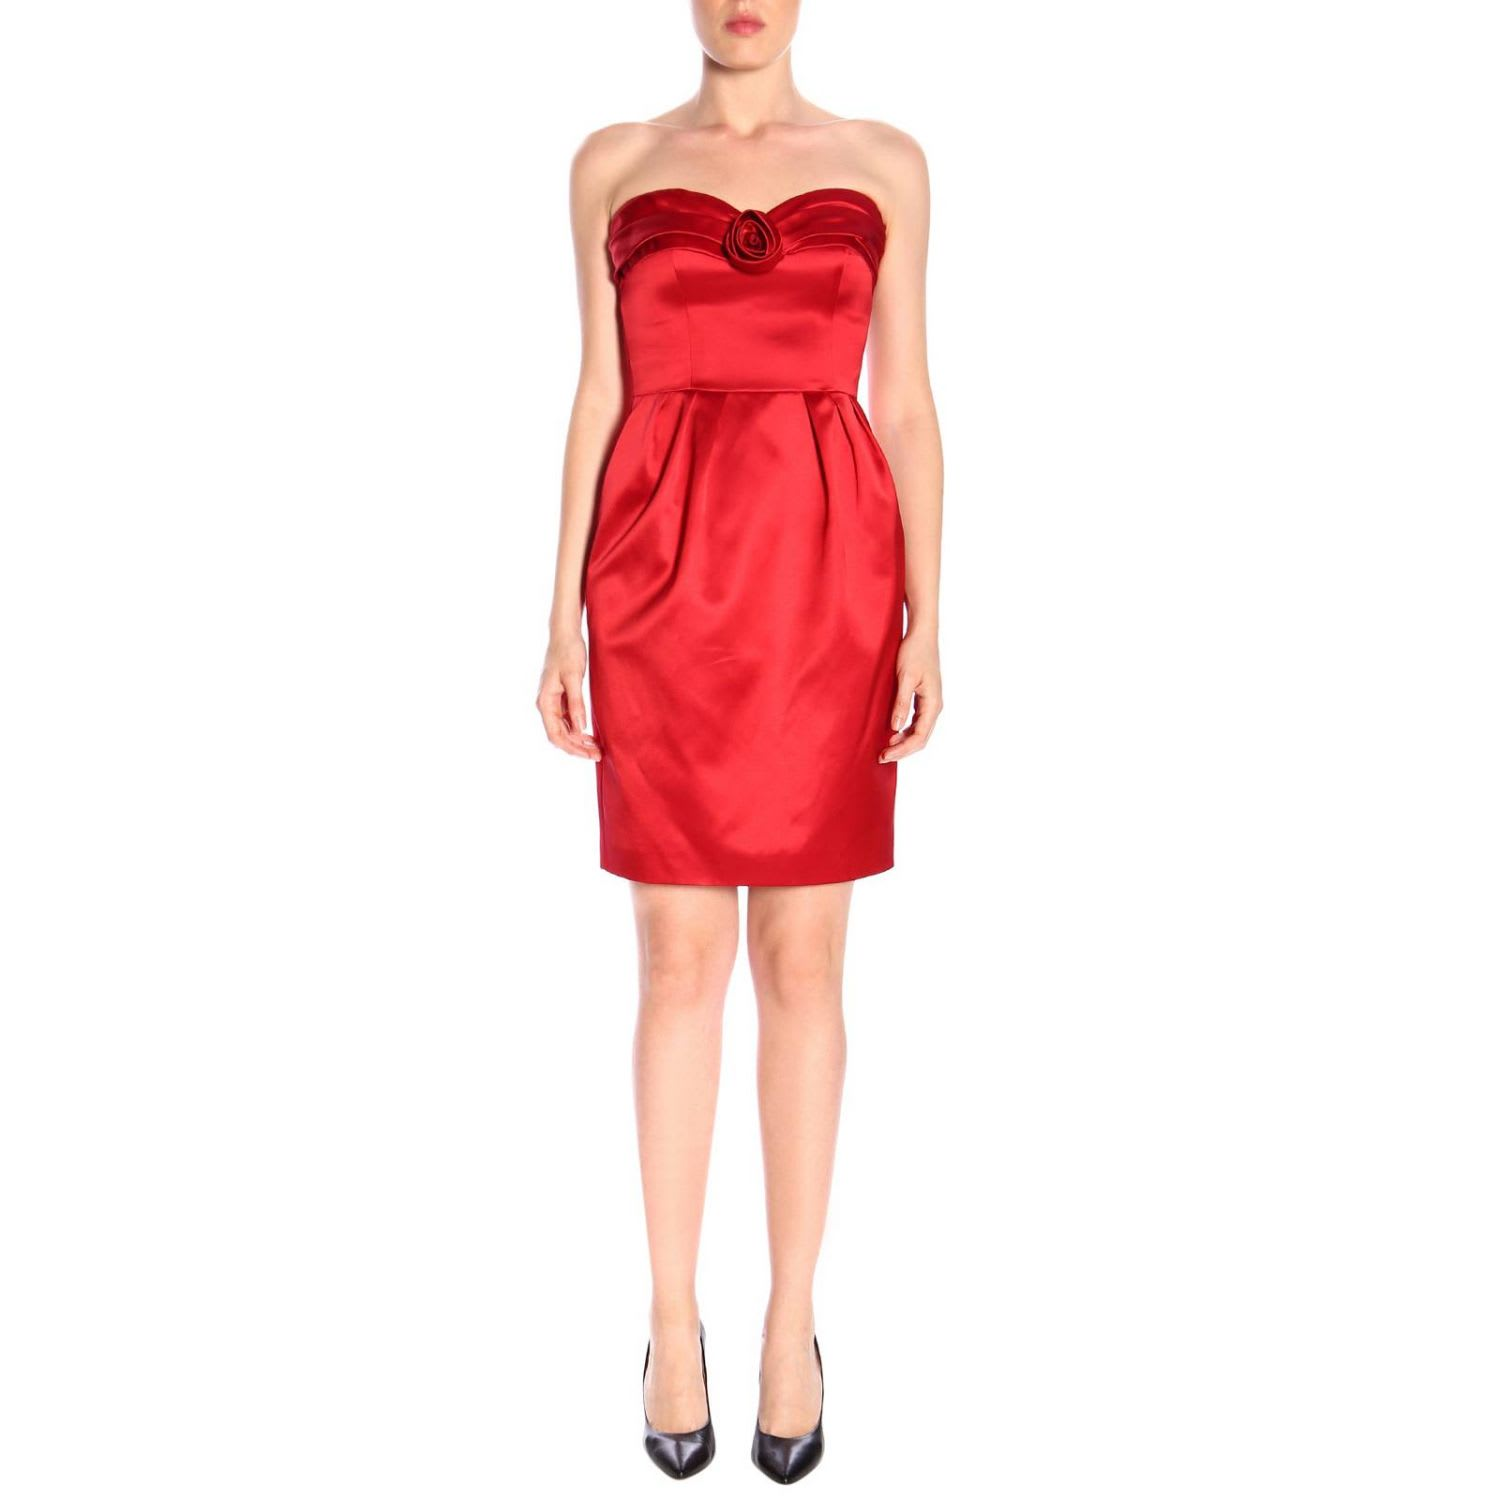 Moschino Couture Dress Dress Women Moschino Couture